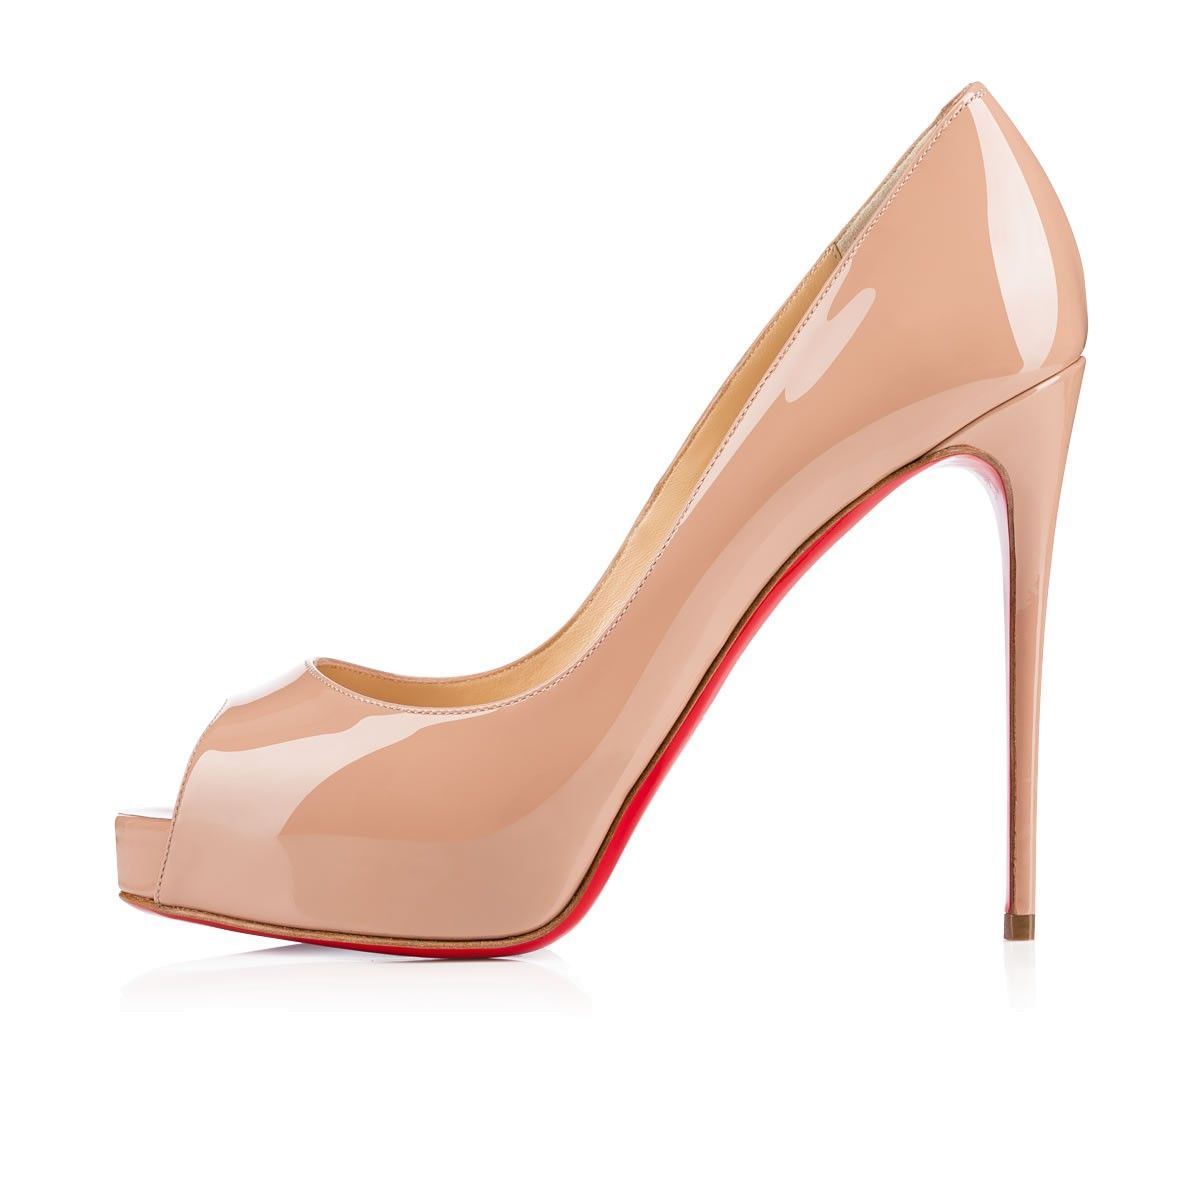 cheap for discount 2ce99 468d0 New Very Prive 120 Nude Patent Leather - Women Shoes ...